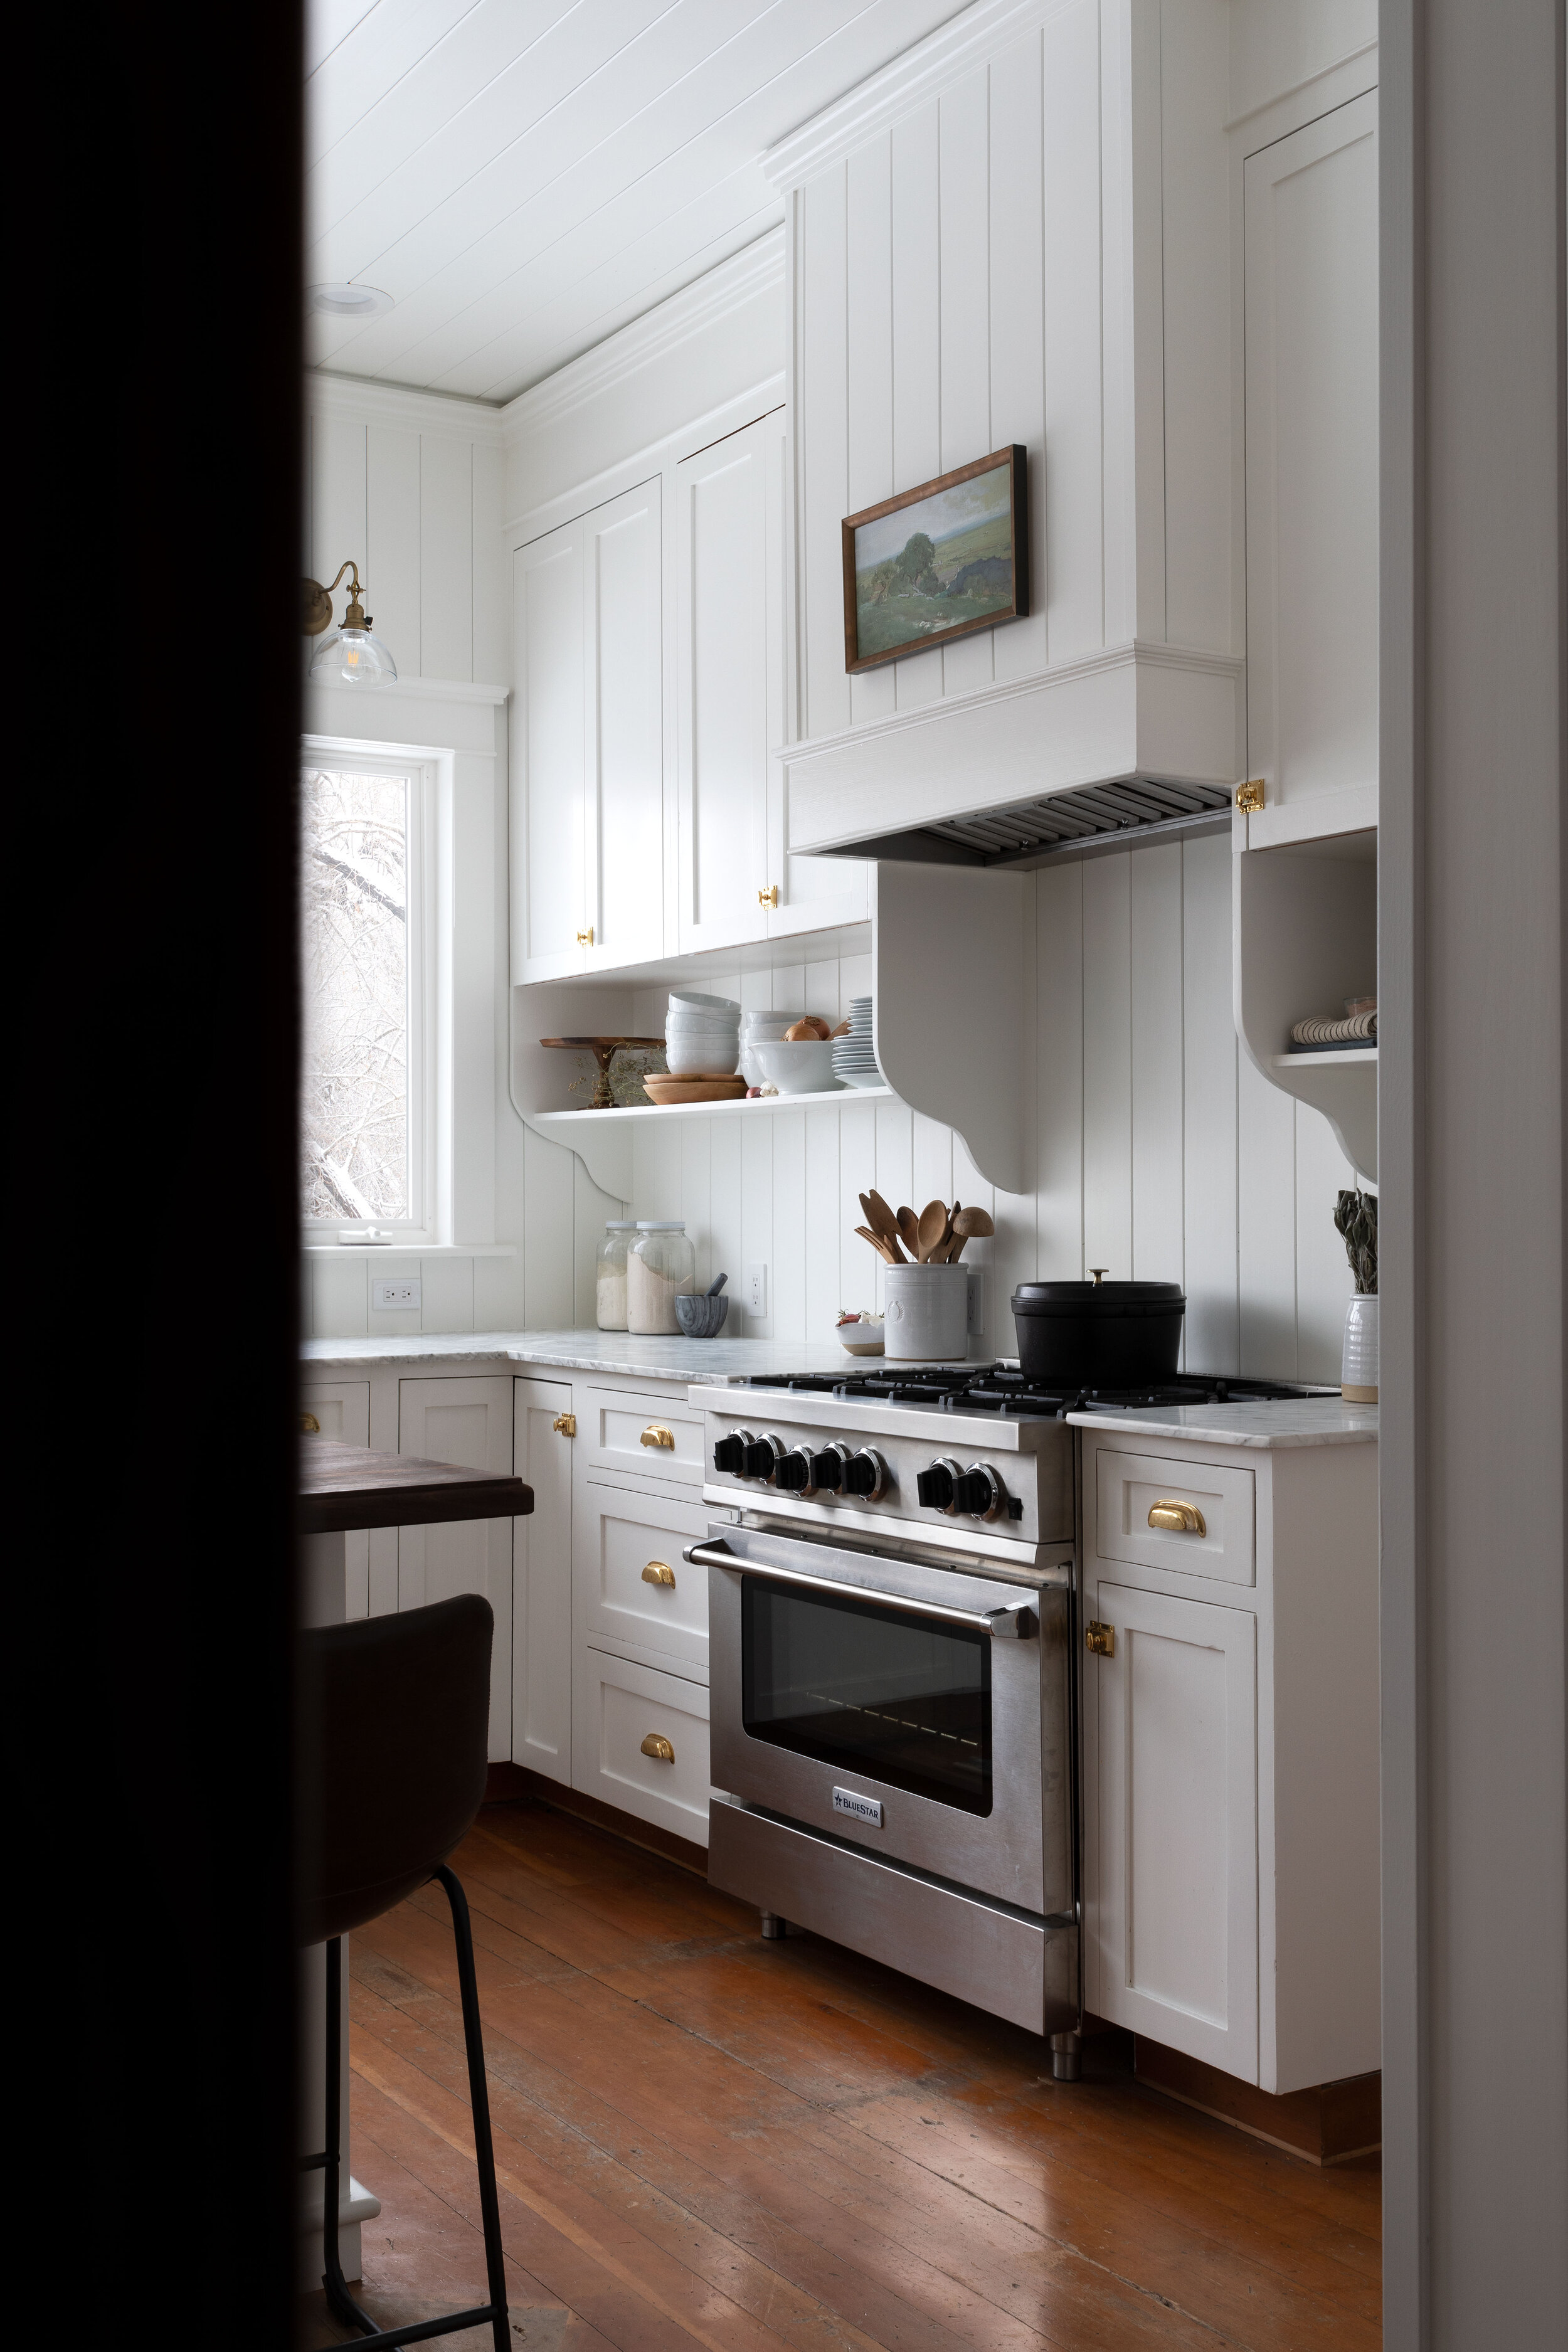 The Grit and Polish - Farmhouse Country Kitchen Reveal 3.0 2 web.jpg